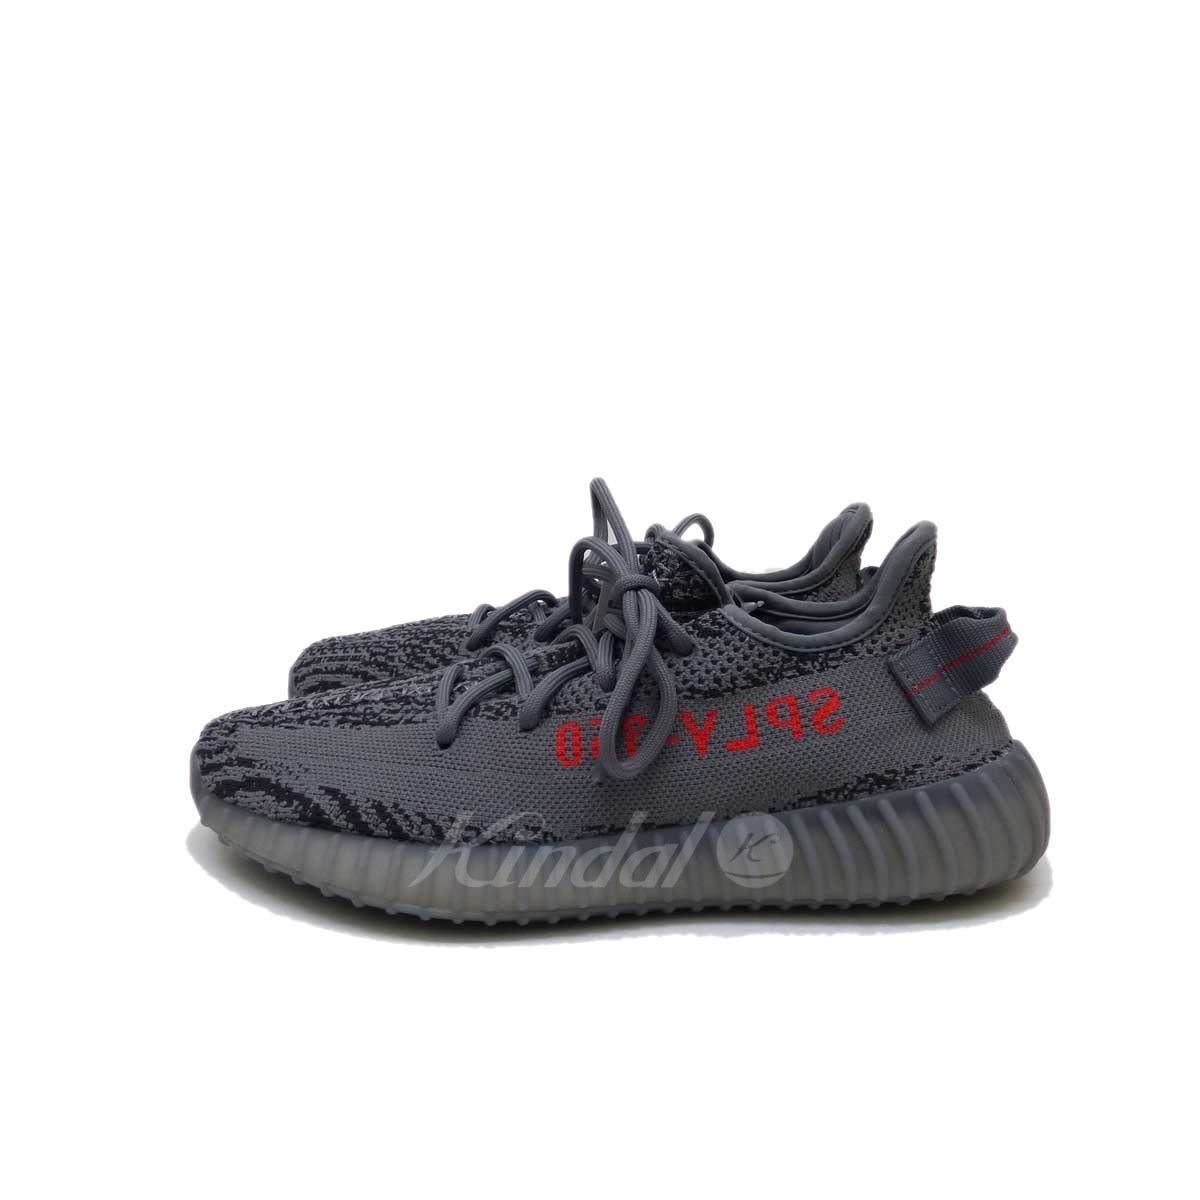 Yeezy Sneakers By Kanye 350v2 Adidas Kindal Originals West Boost qgZwWXFW